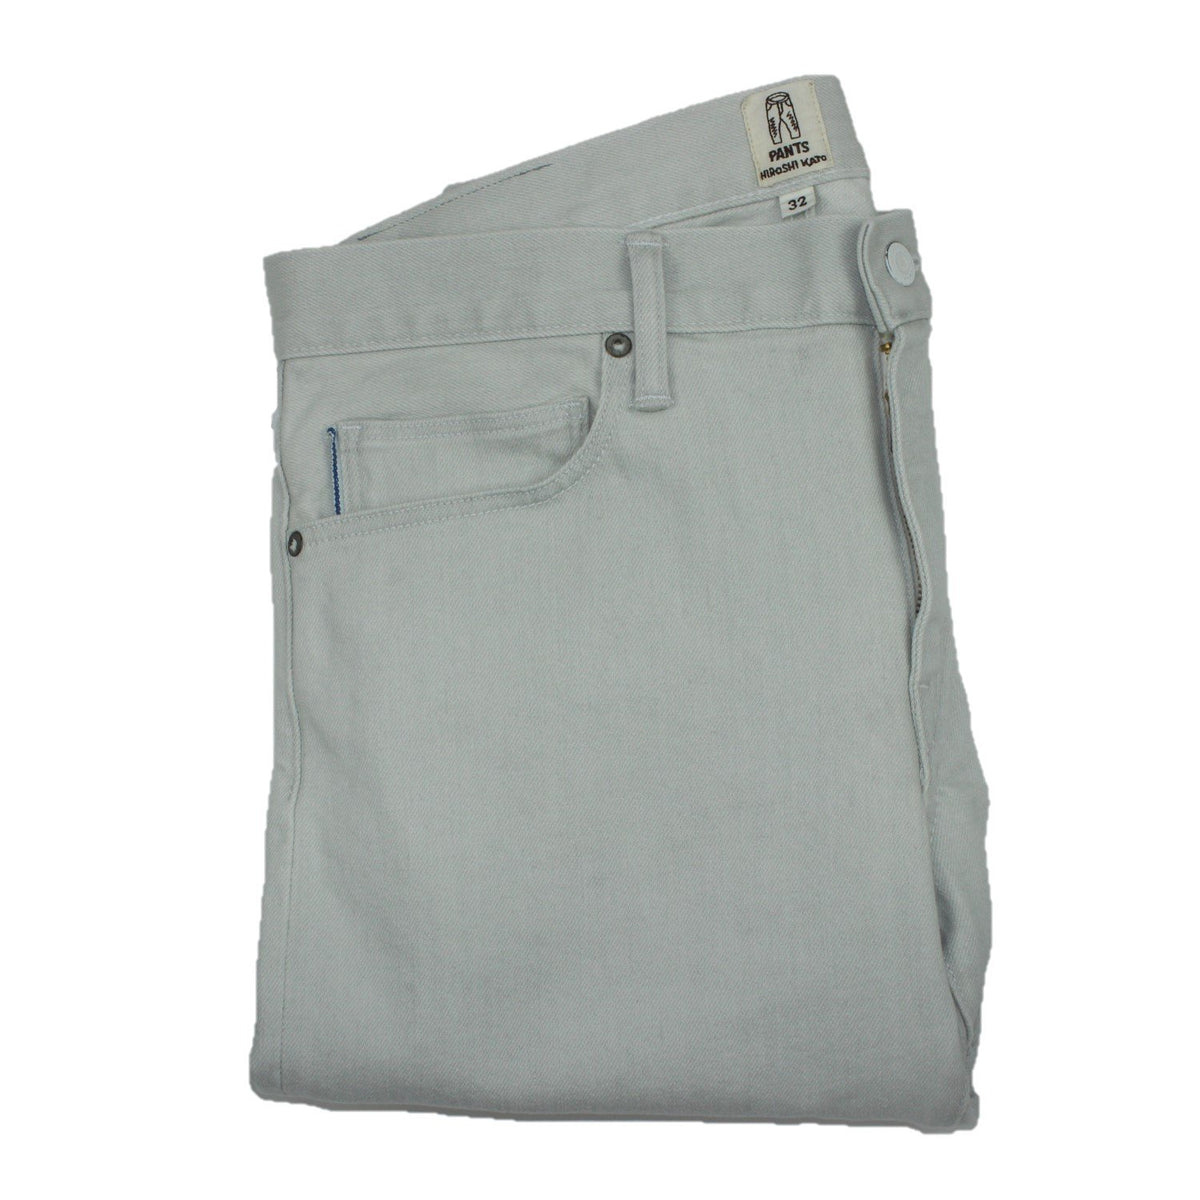 Folded front view of selvedge pants